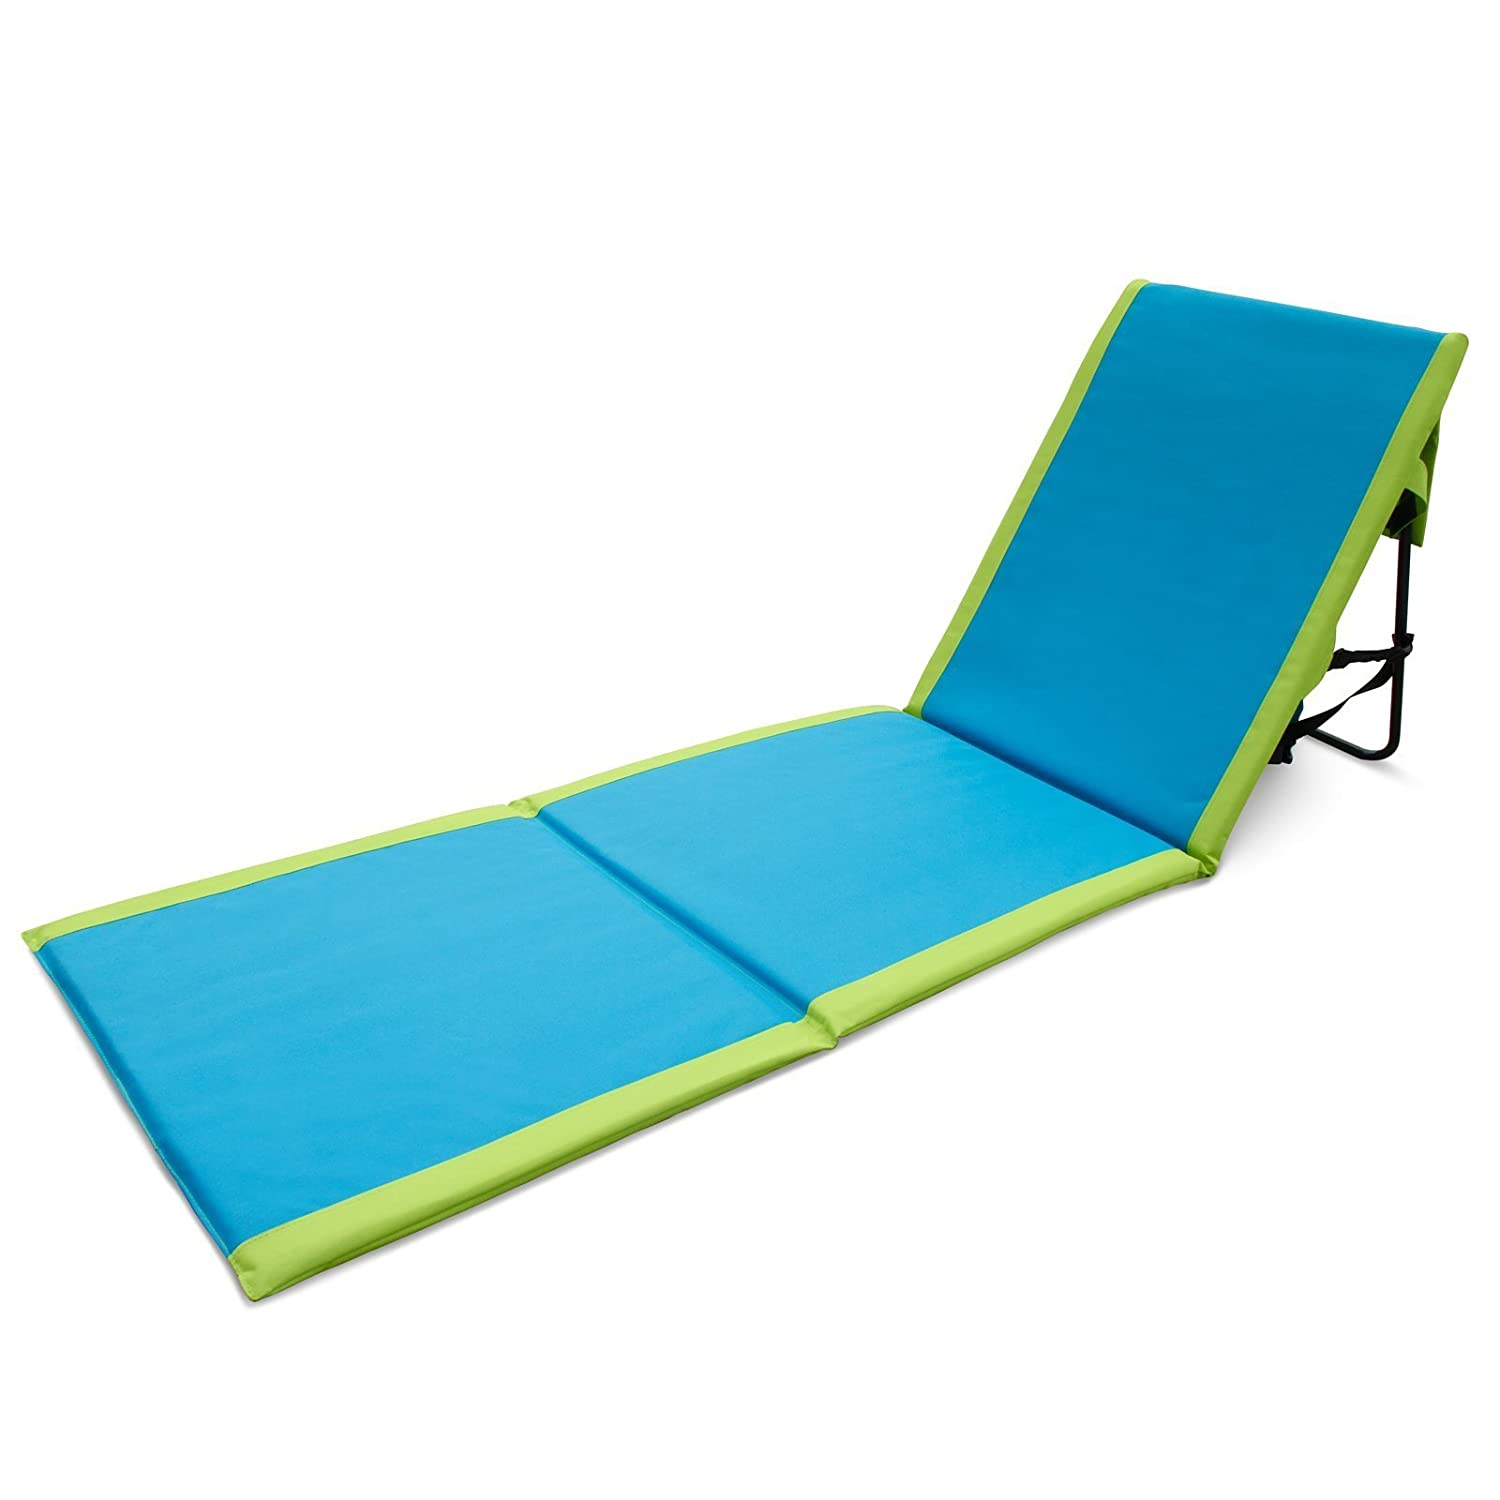 Pacific Breeze Lounger - 2 Pack